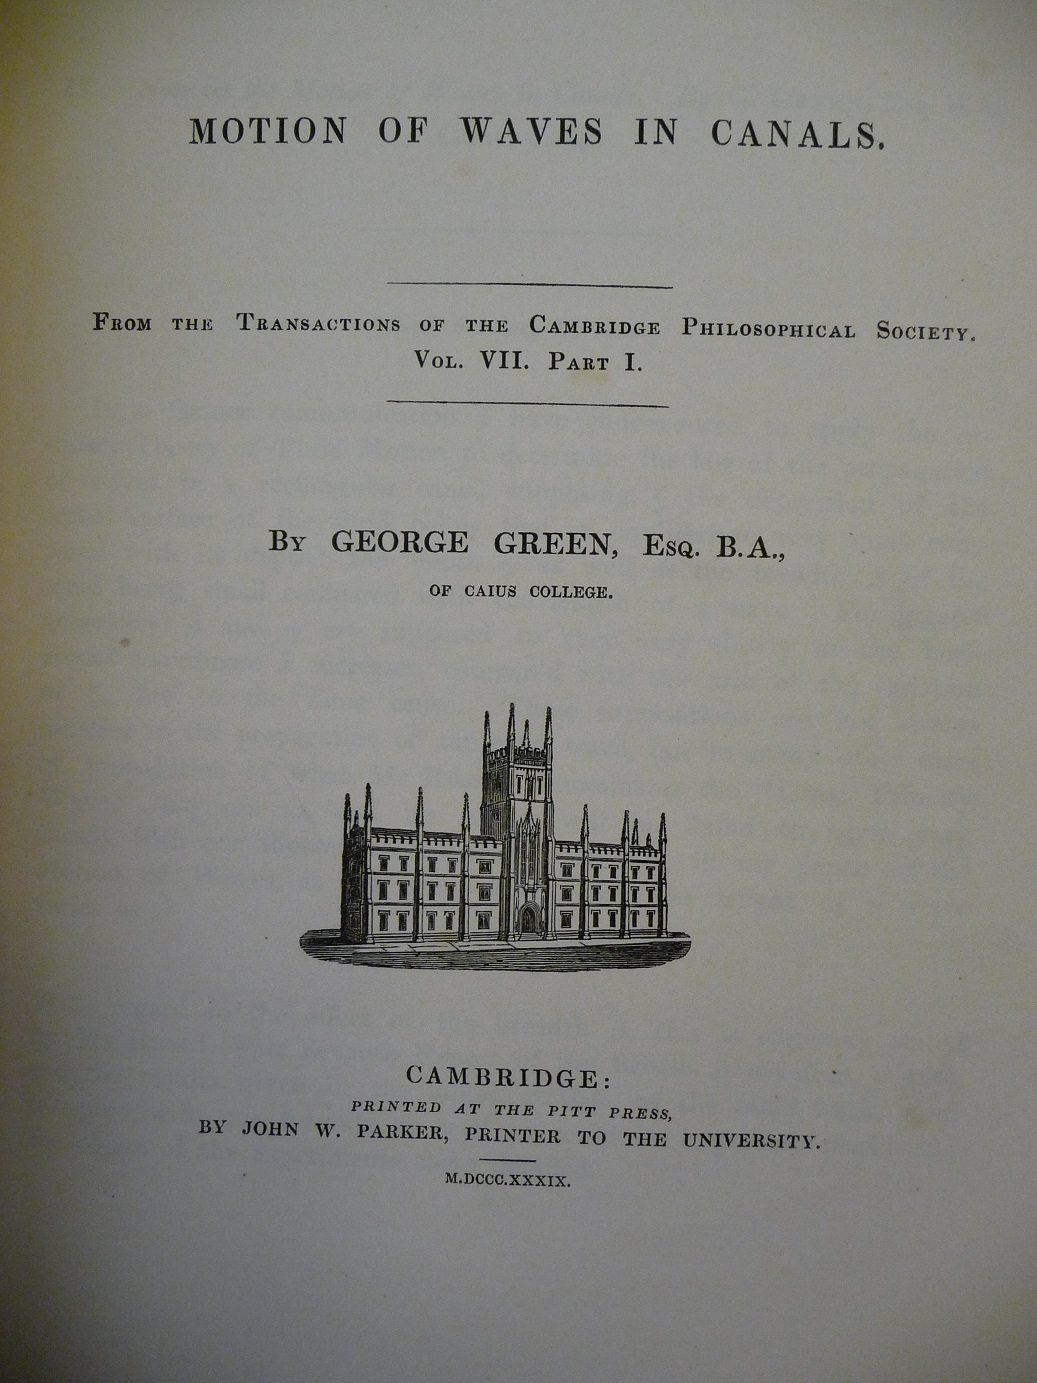 An image of a page from 'Motion of Waves in Canals' by George Green.